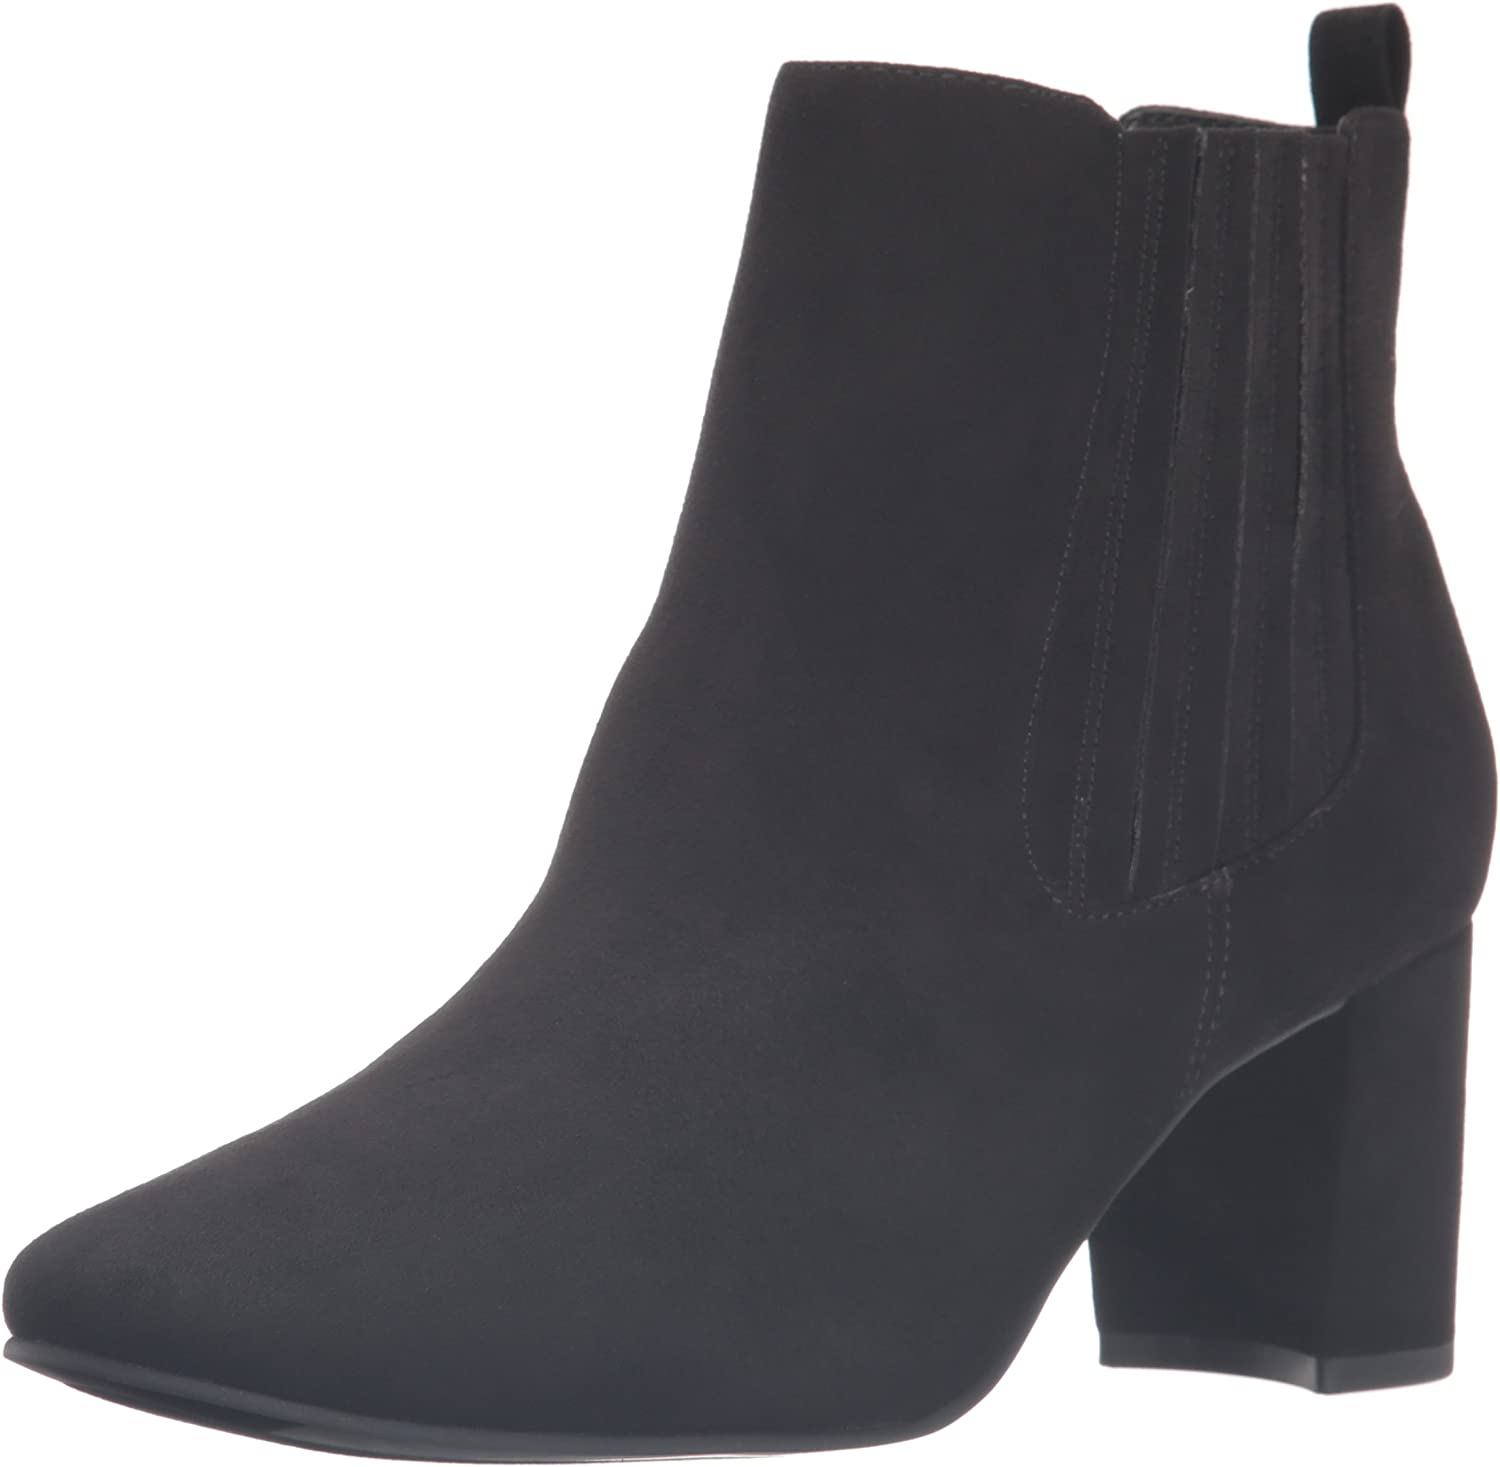 Kenneth Cole REACTION Women's Float Away Ankle Bootie